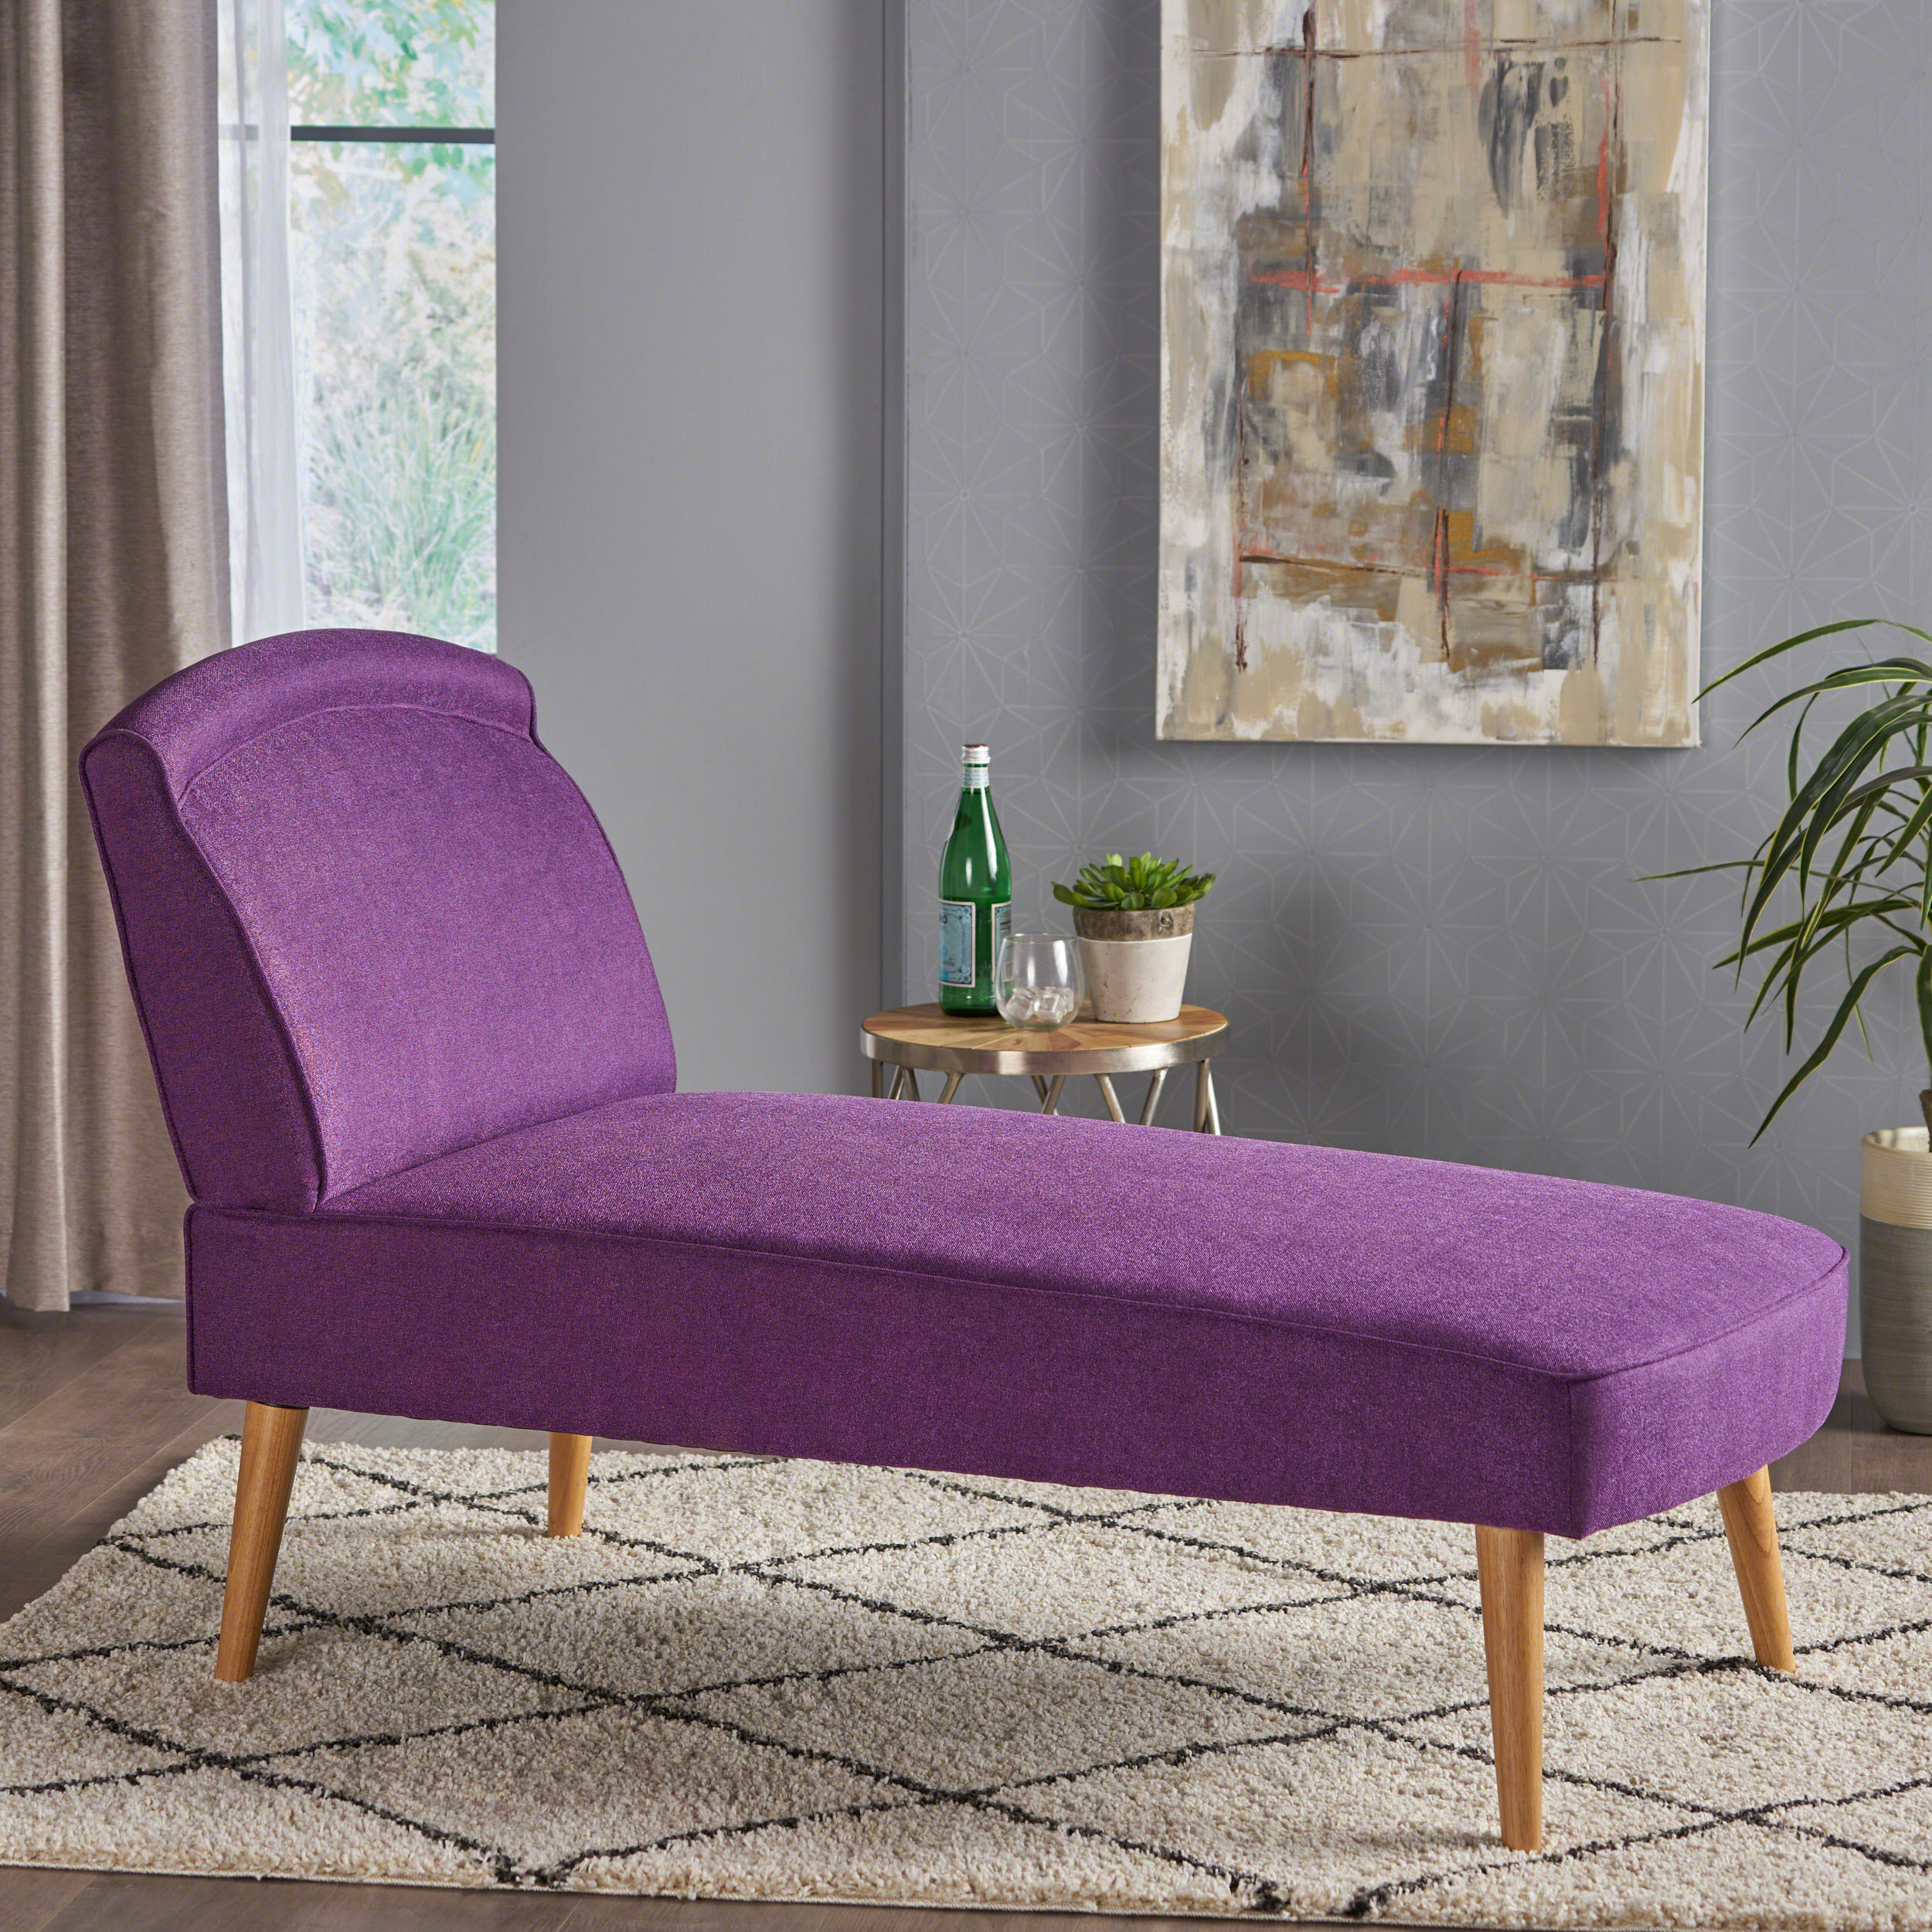 Noble House Desmond Mid Century Modern Fabric Chaise Lounge,Purple